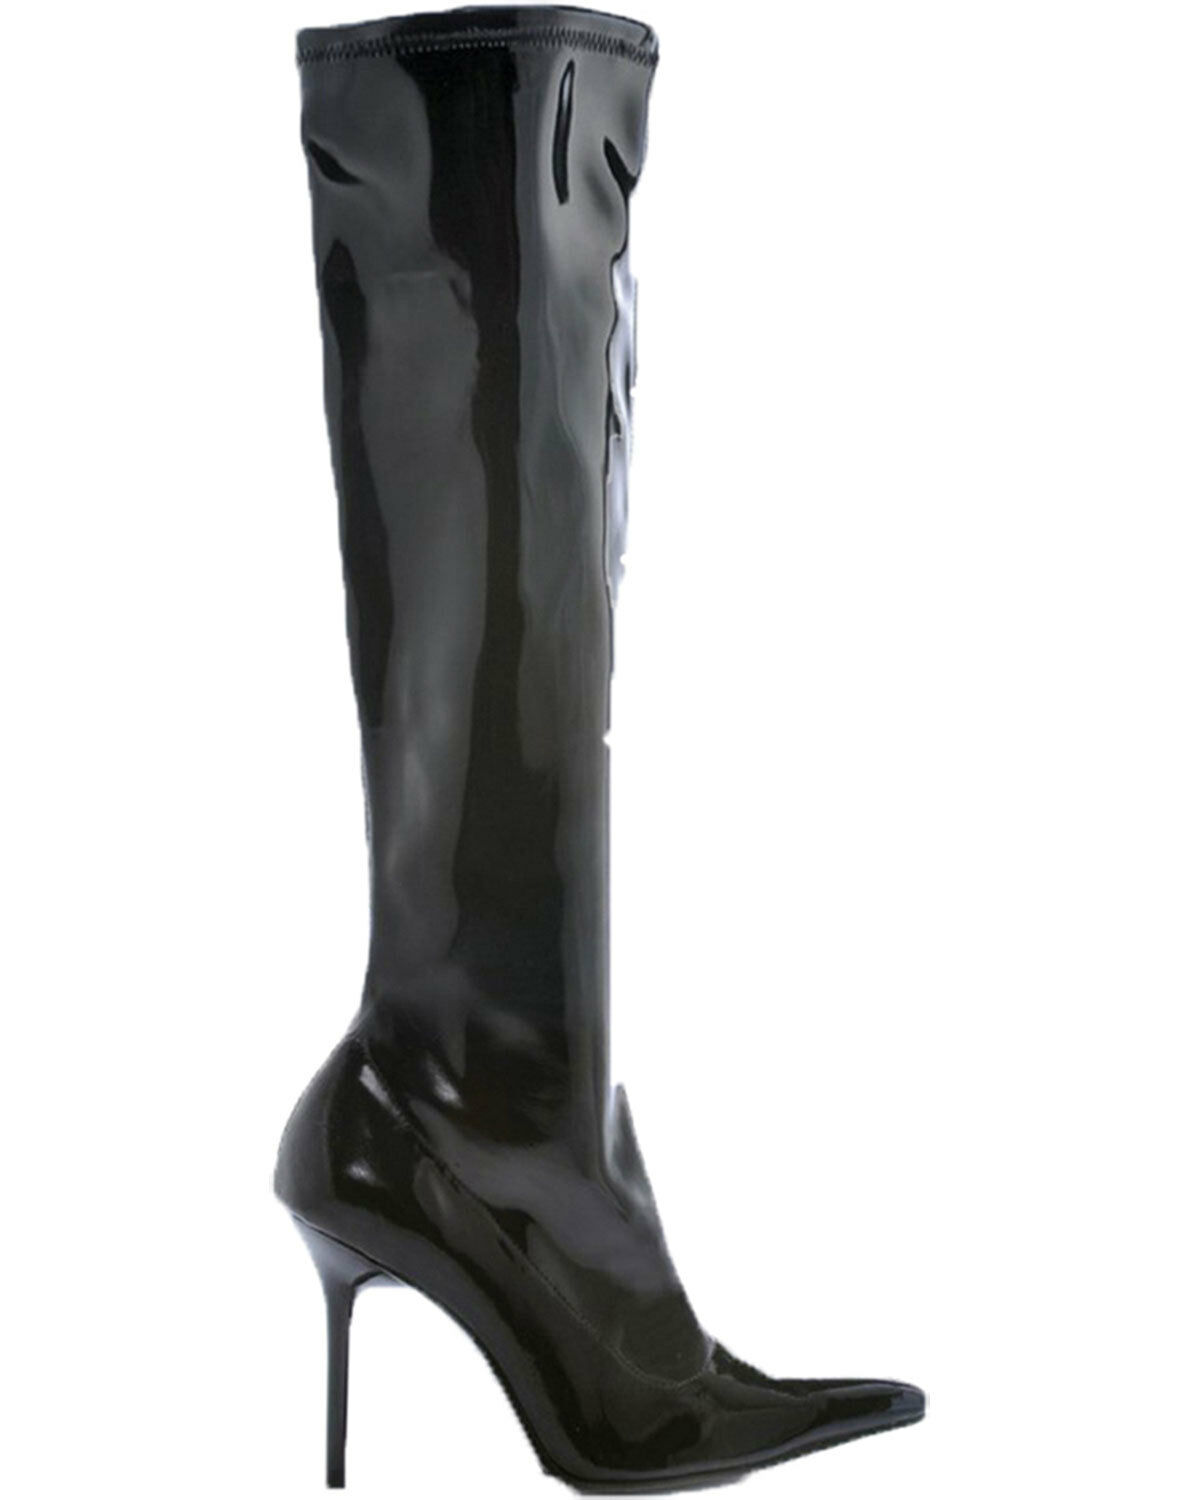 Morris Costume Women's Emma Knee Length Patent Leather Boots Black 10. HA131BK10